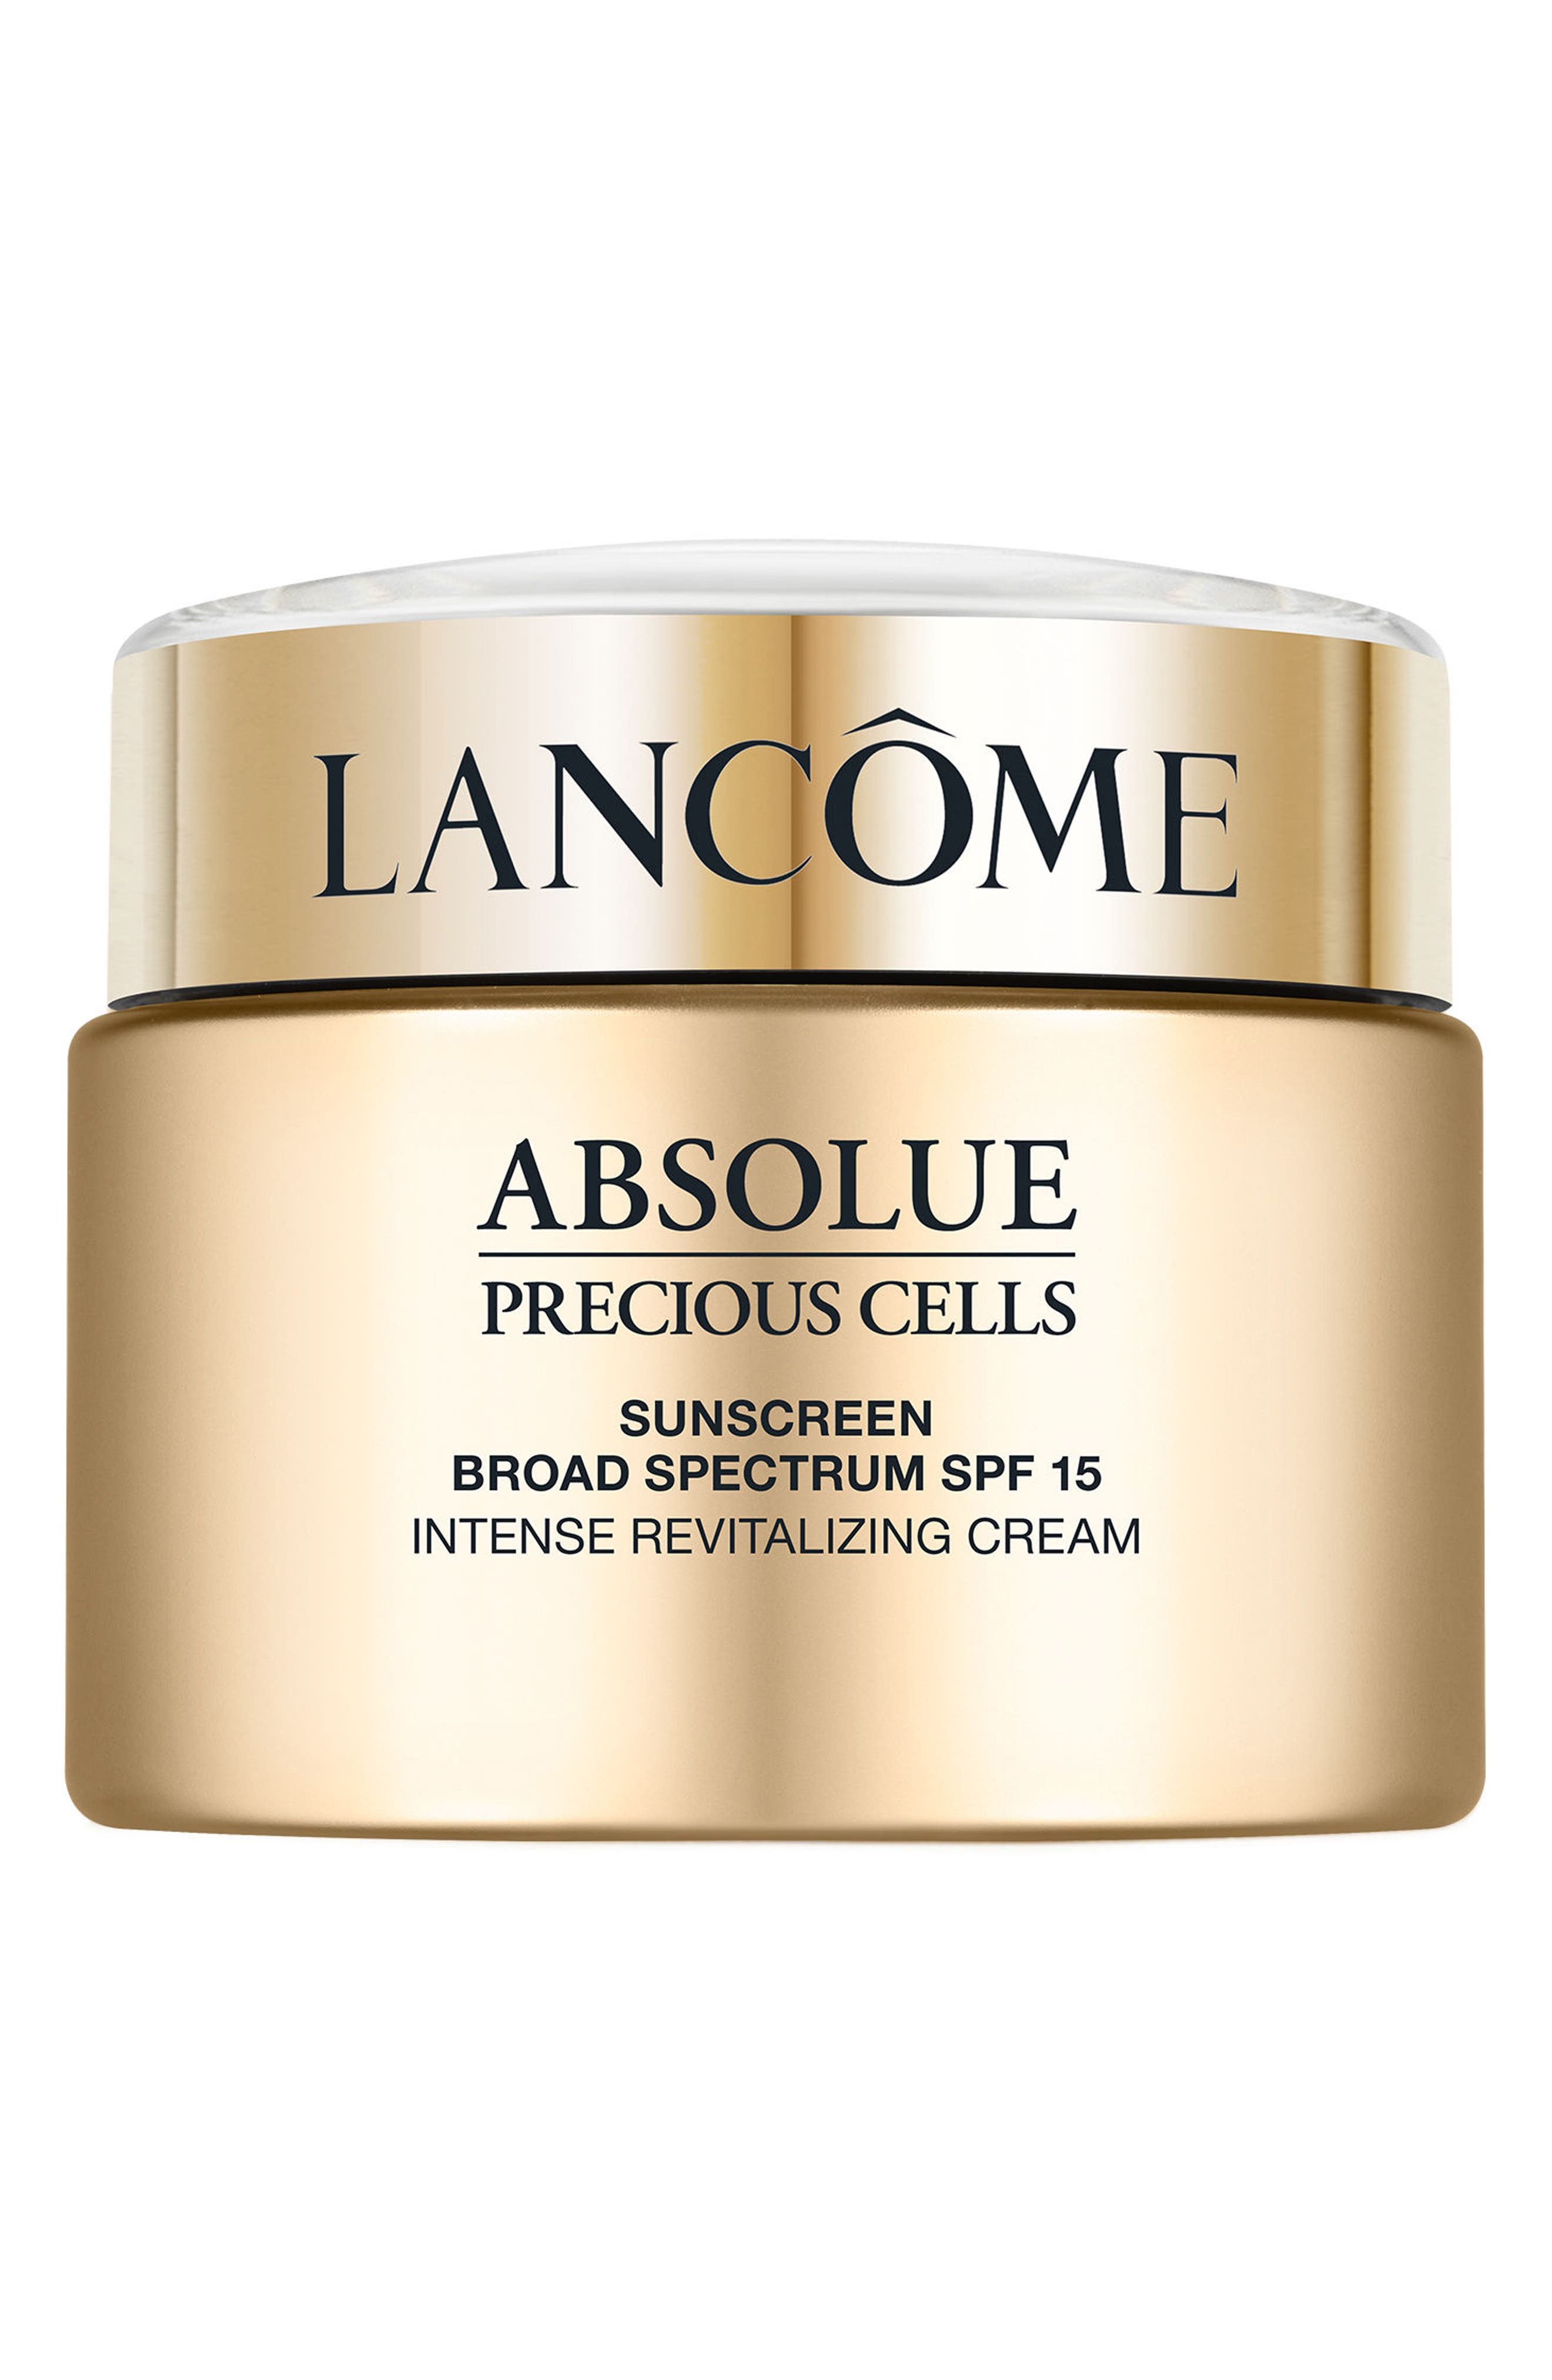 Absolue Precious Cells SPF 15 Repairing and Recovering Moisturizer Cream,                         Main,                         color, No Color